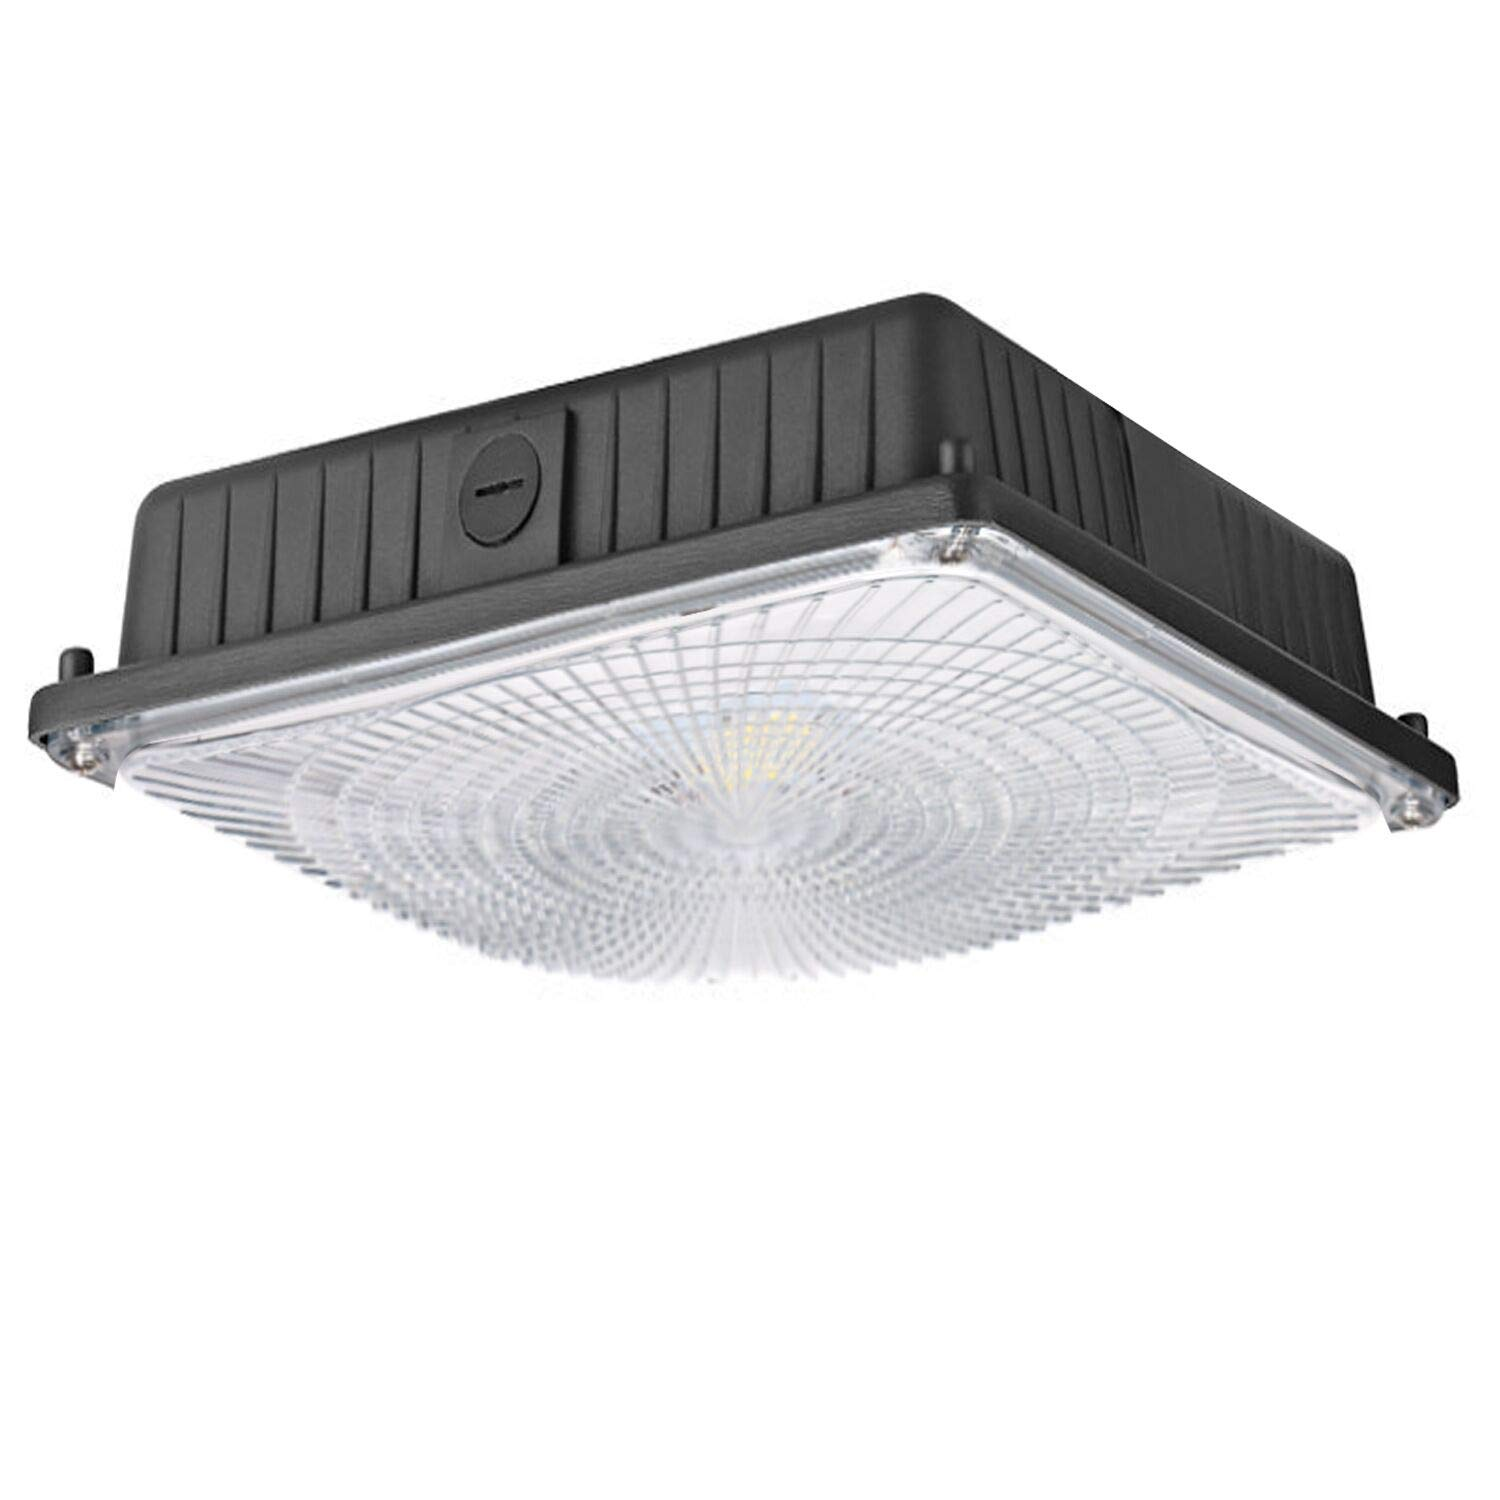 Hykolity 65W LED Canopy Light, 7800lm 5000K, 0-10V Dimmable, 300W-350W MH/HPS/HID Replacement, 100-277VAC, Wet Rated Outdoor Low Bay, Balcony Carport Driveway Ceiling Light, DLC Listed